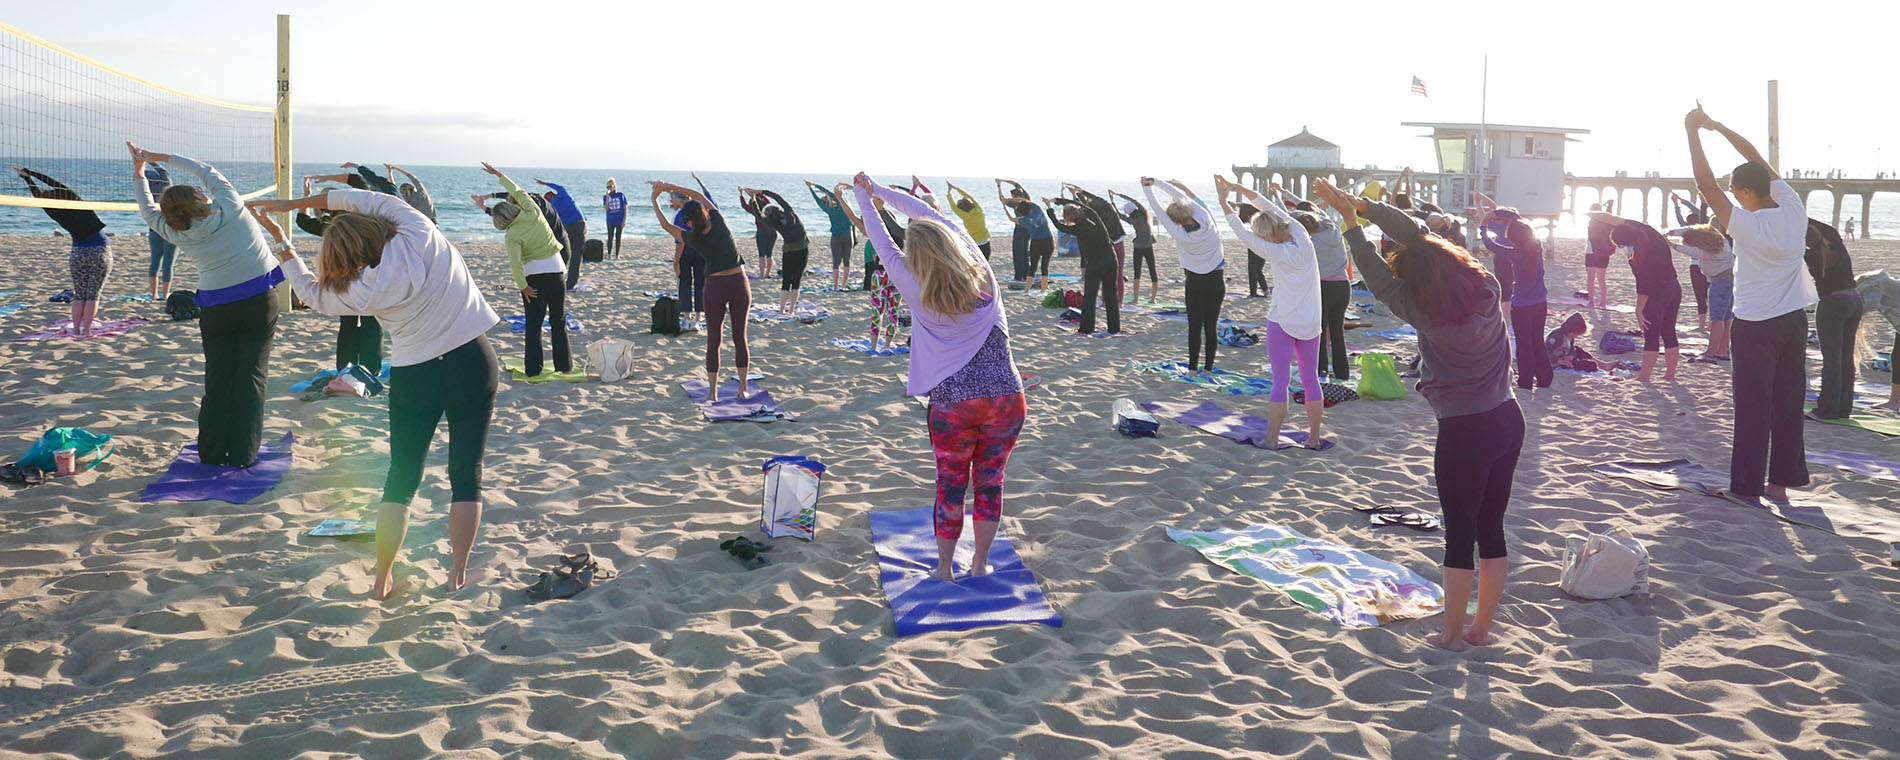 FREE Yoga at the Pier Every Monday in July! @ Manhattan Beach Pier